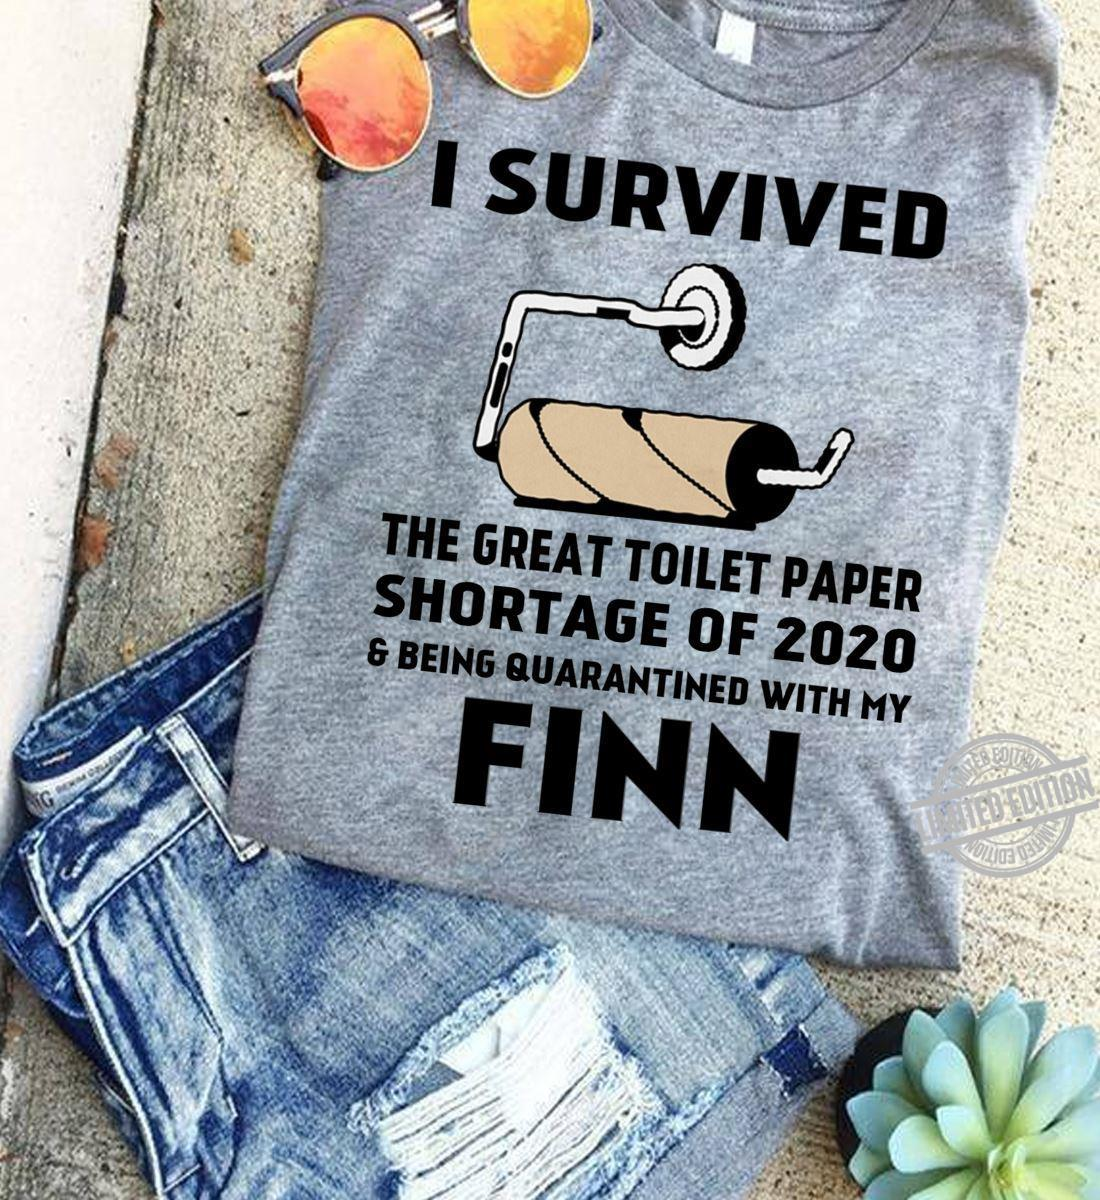 I Survived The Great Toilet Paper Shortage Of 2020 Finn Shirt